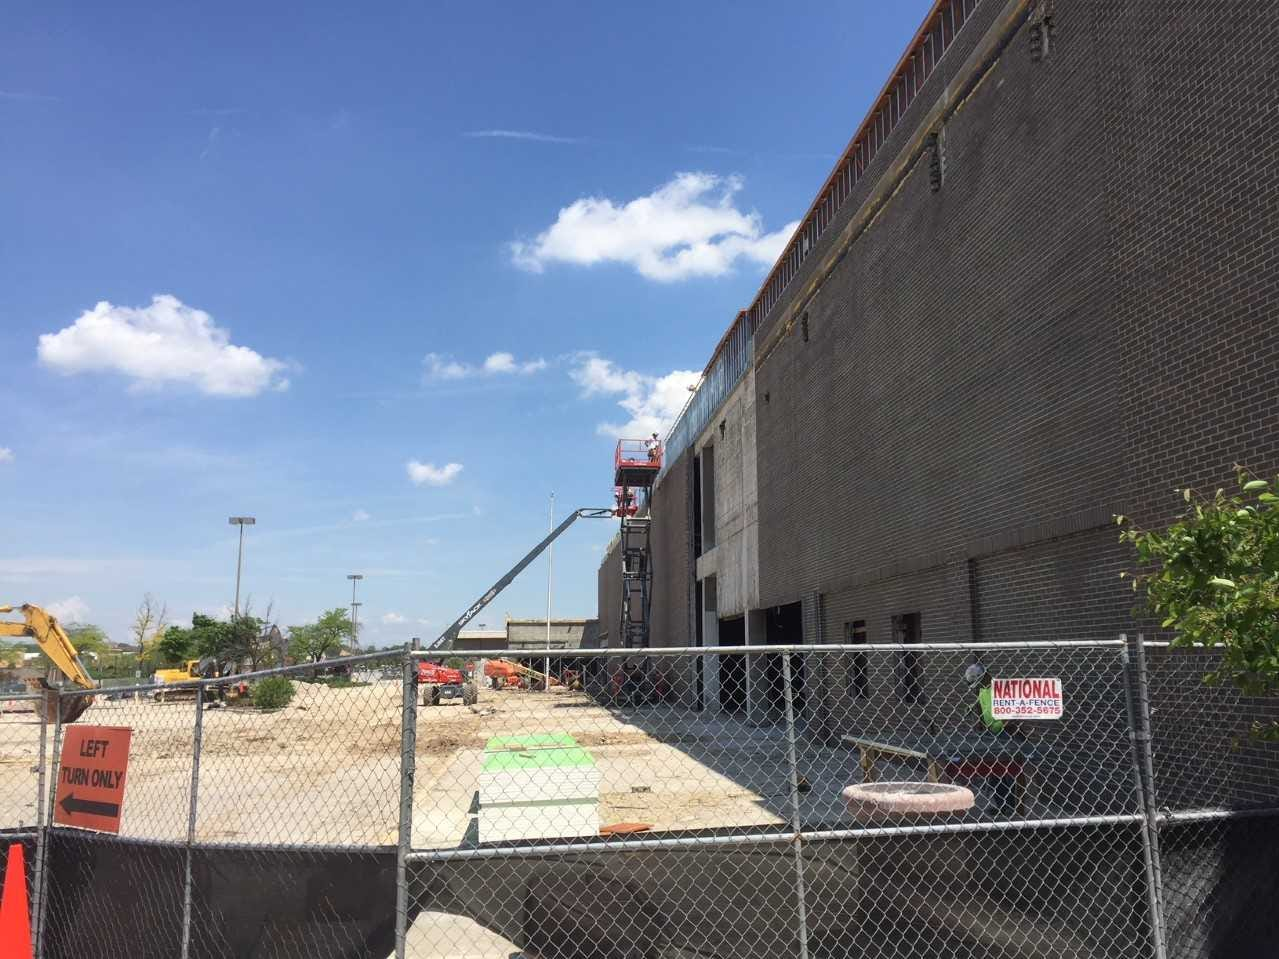 Former Southridge Sears redevelopment continues with T.J. Maxx winning approval for new store